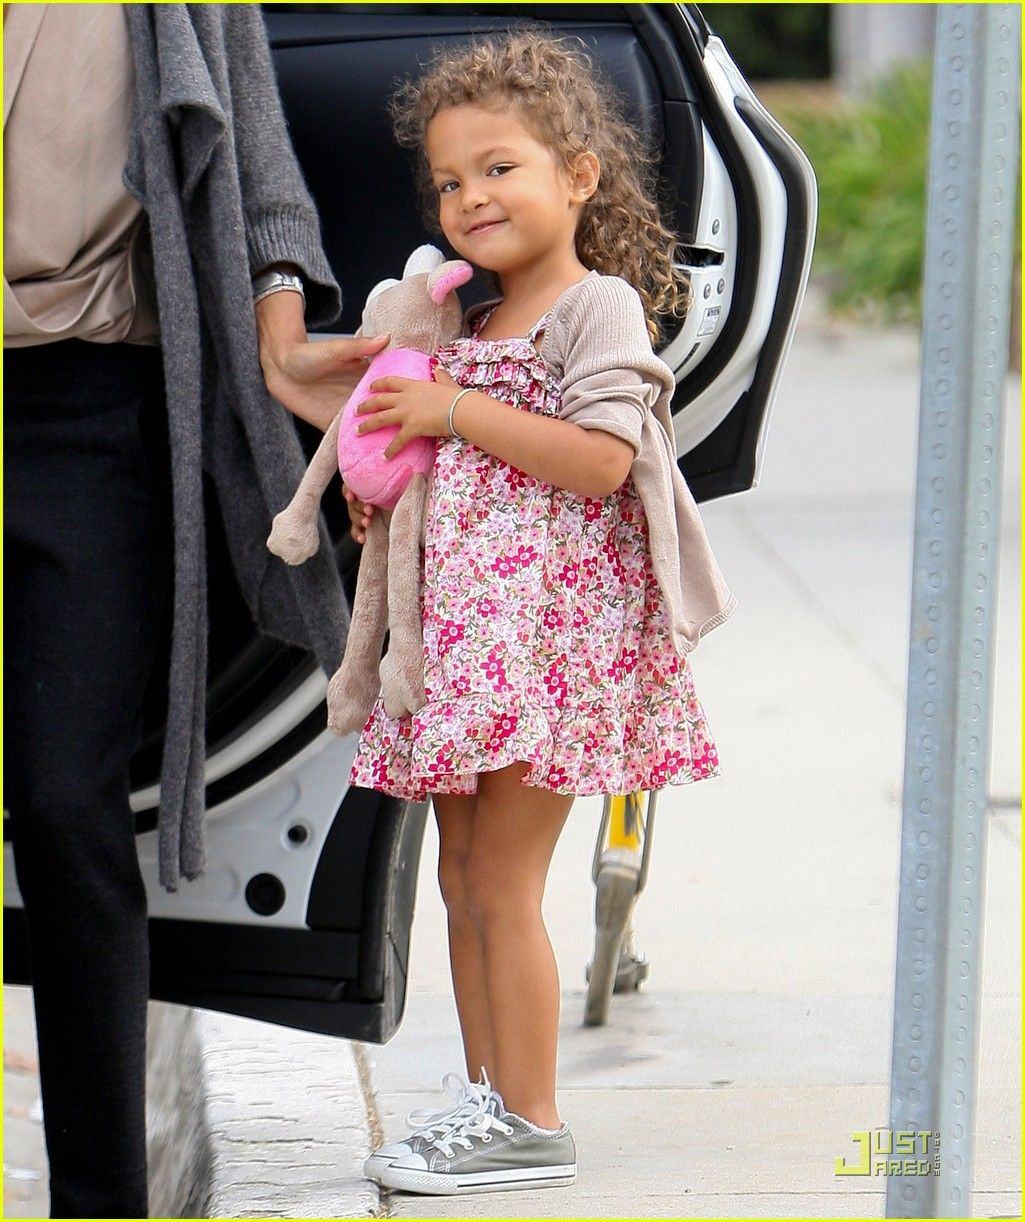 She looks like Halle Berry s kiddo. Both are beautiful girls. Happy Birthday to your big girl!